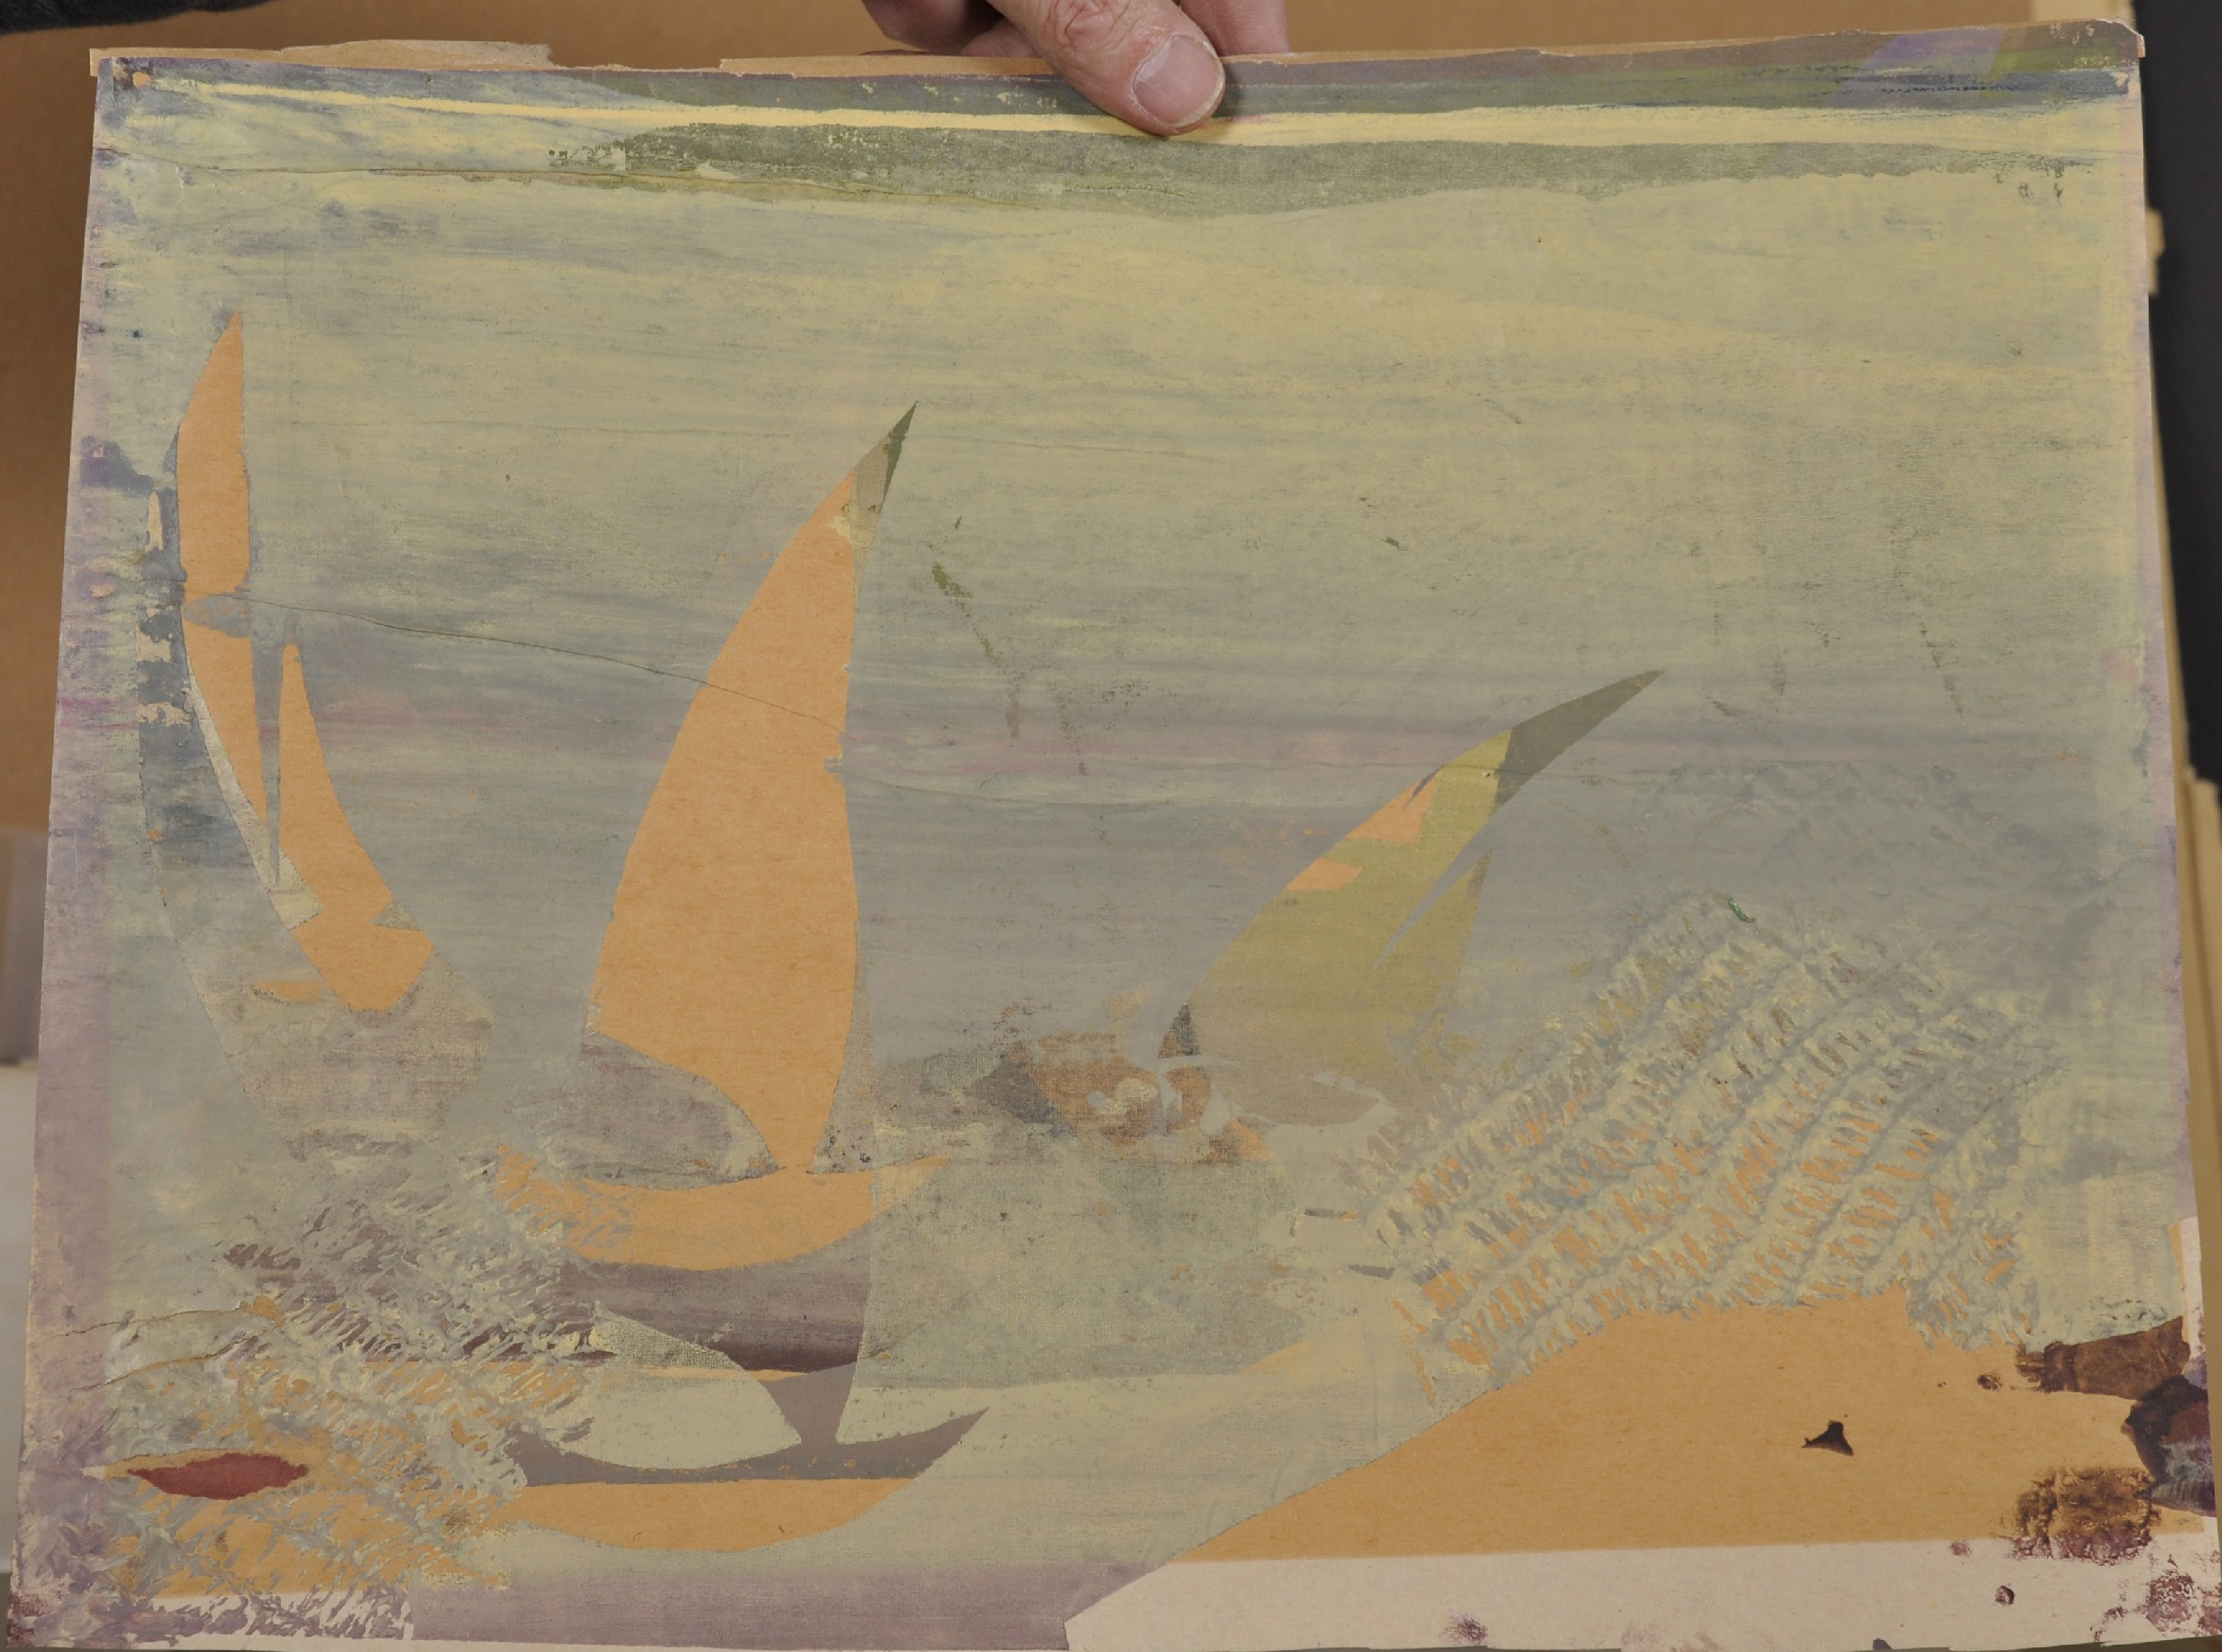 """Early 20th Century European School. Sailing Boats, Woodblock, Unframed, 12"""" x 16.75"""", and another by - Image 3 of 3"""